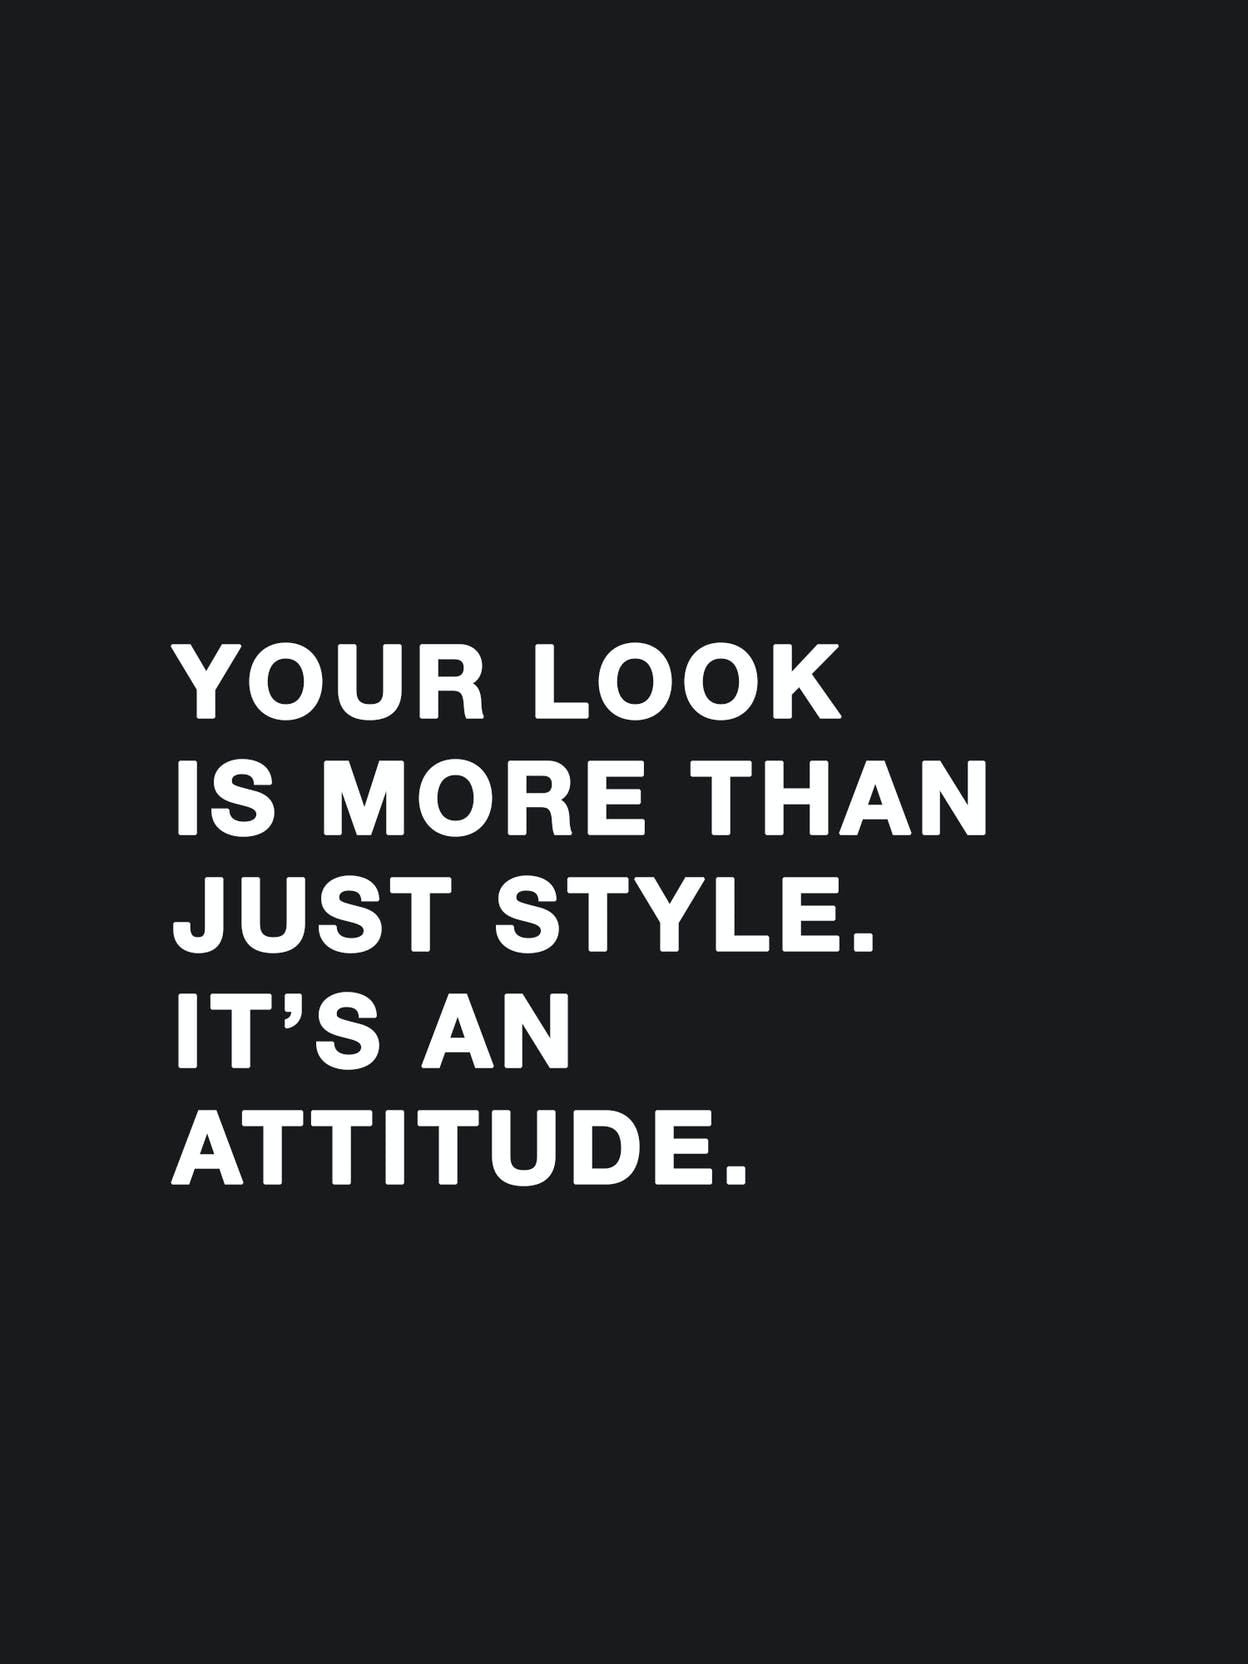 text-it-is-an-attitude